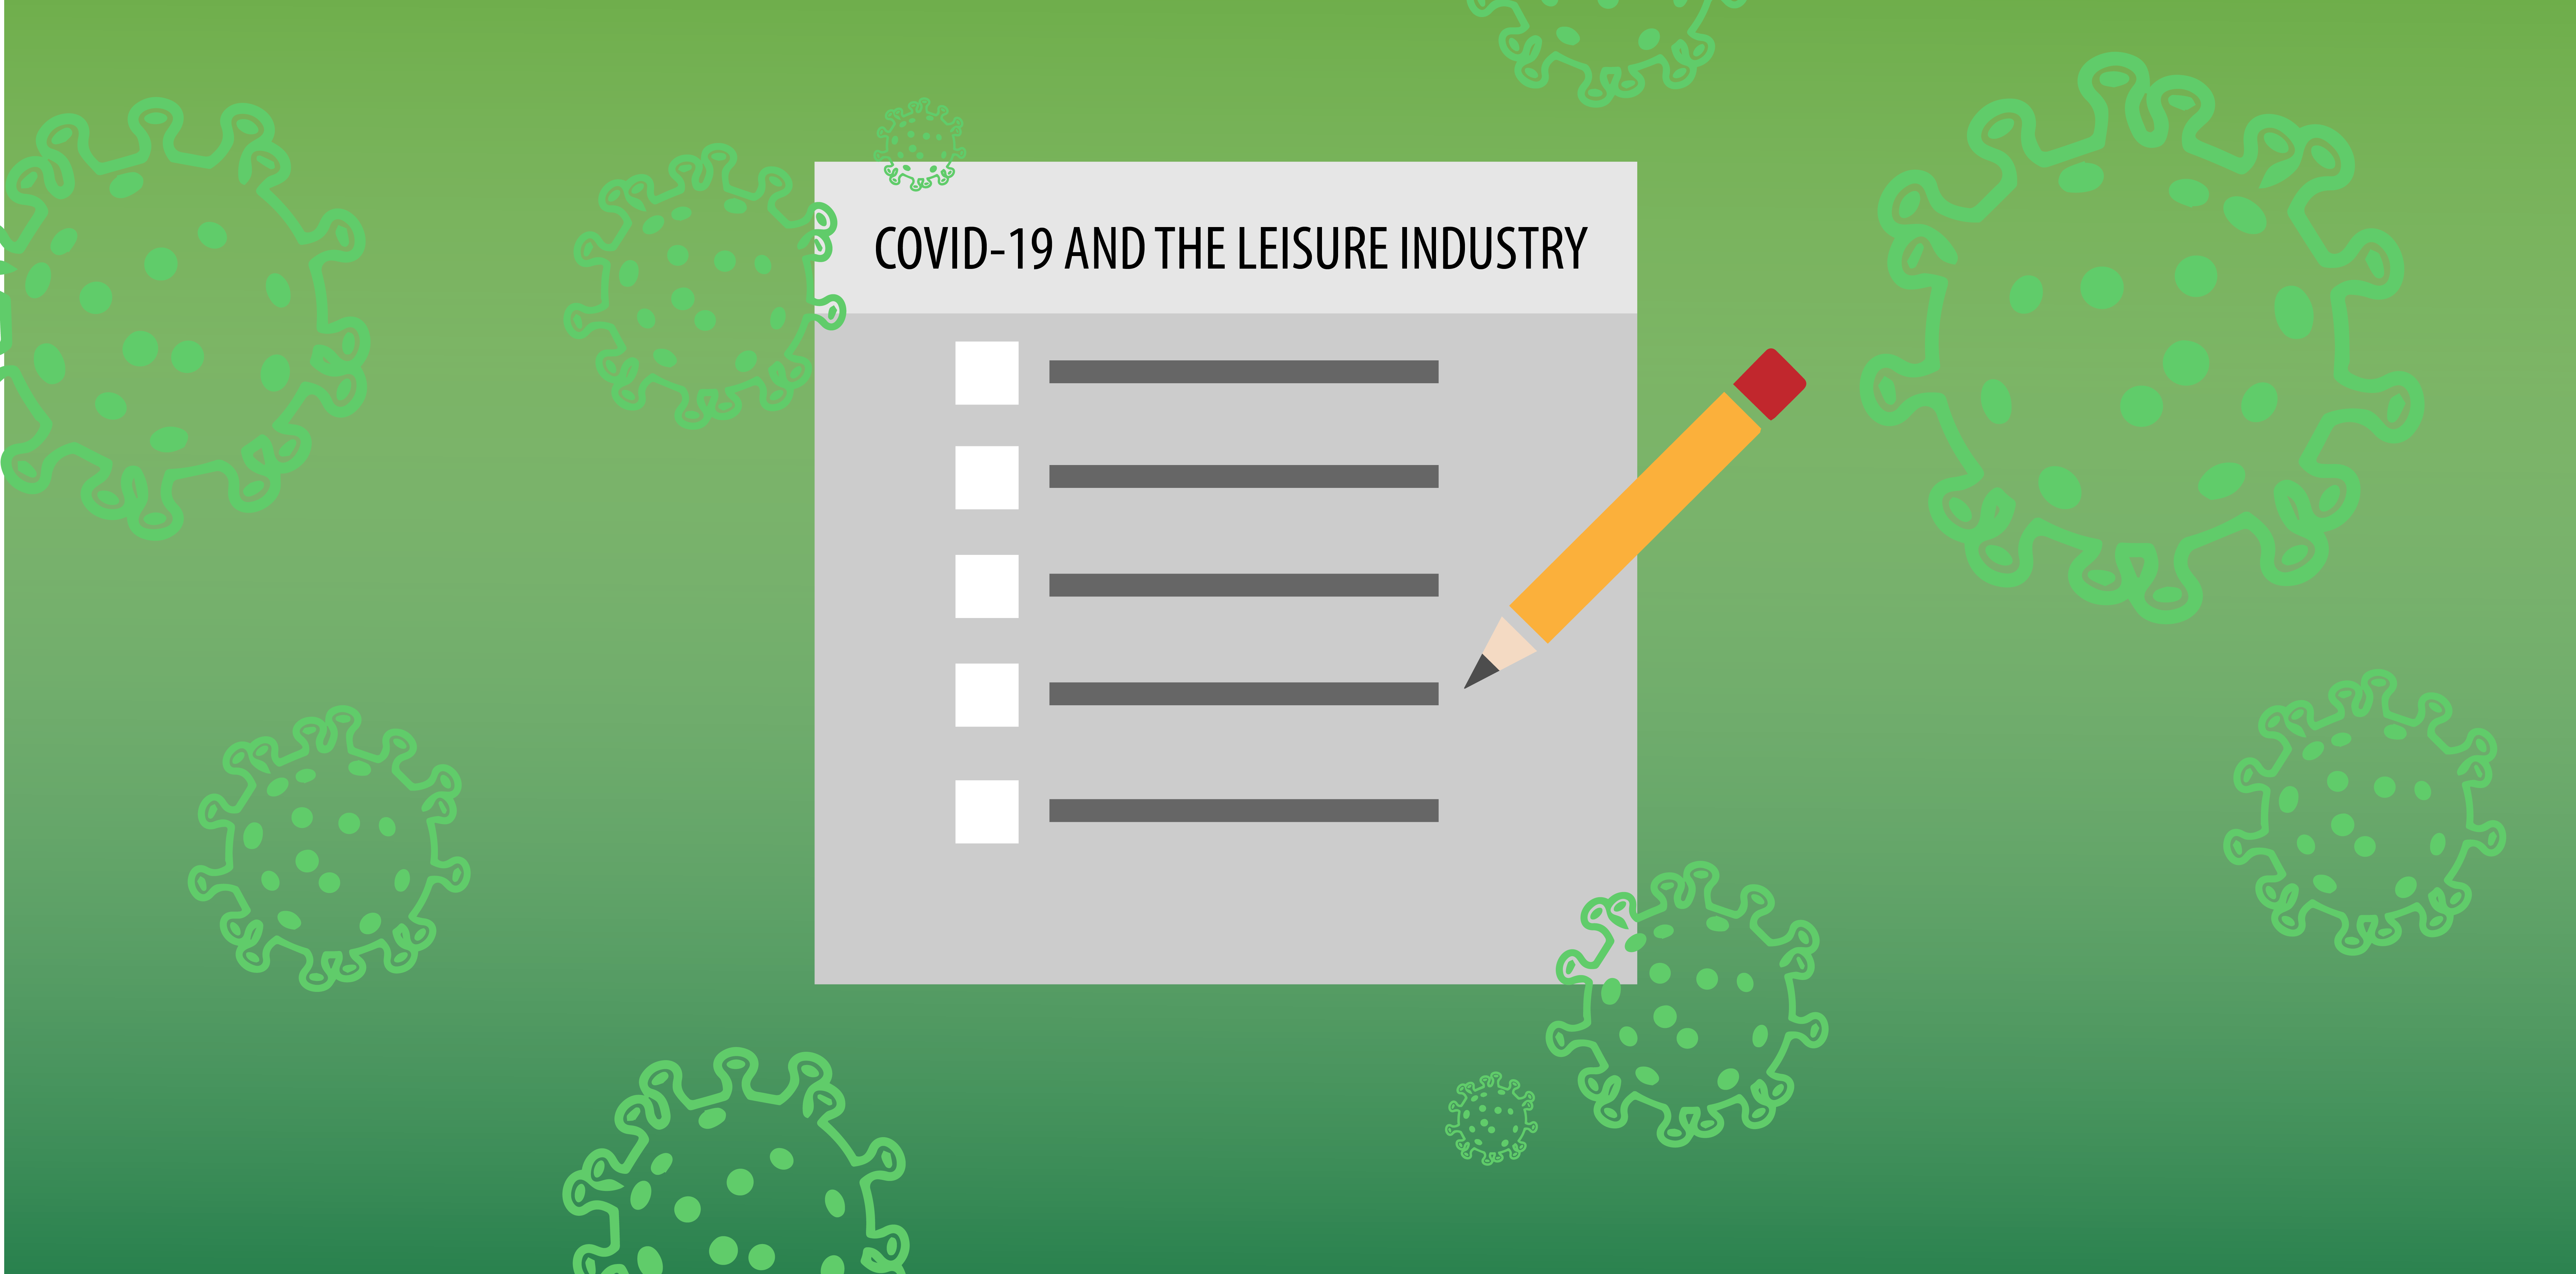 COVID-19 and the leisure industry.